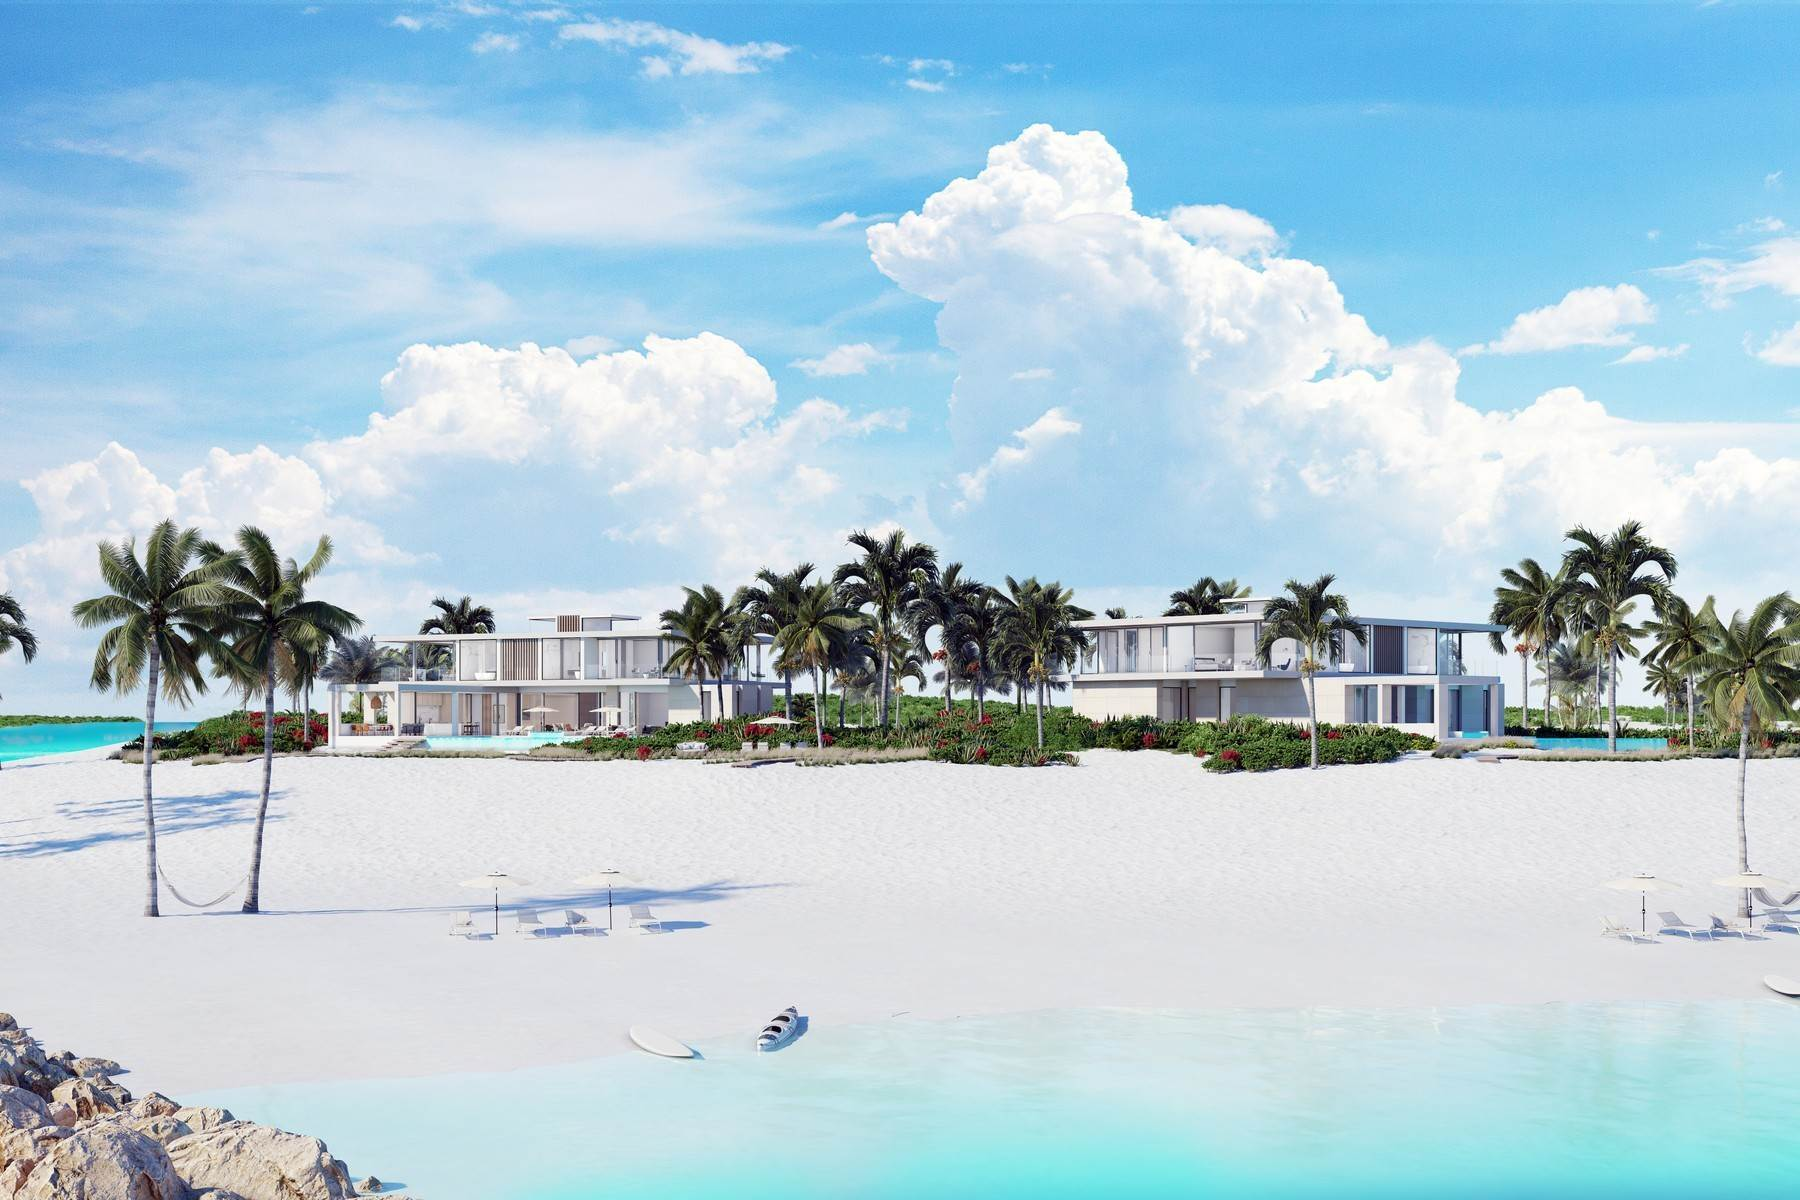 Single Family Homes for Sale at The Peninsula at Emerald Estate - Beach House 1 Emerald Point Beachfront Leeward, Providenciales TKCA 1ZZ Turks And Caicos Islands